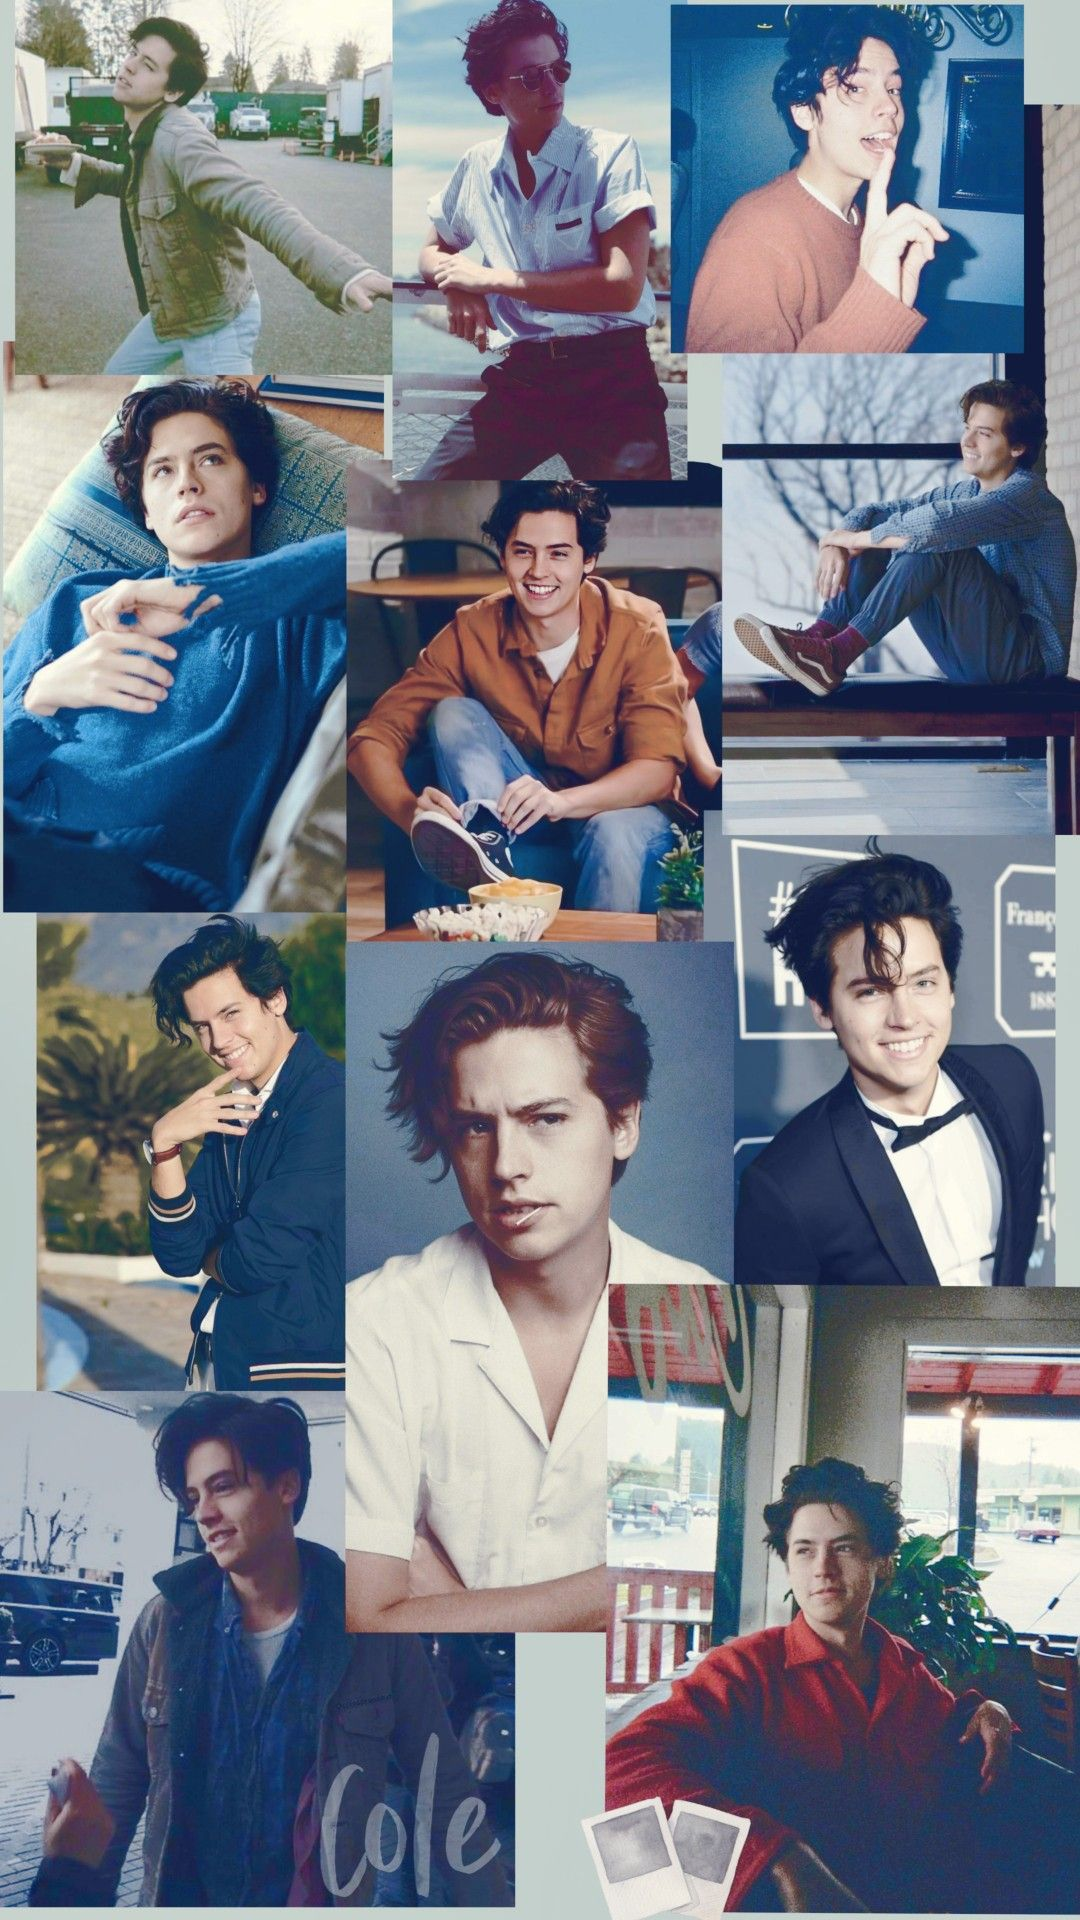 Cole 3 Cole Sprouse Wallpaper Cole Sprouse Wallpaper Iphone Cole Sprouse Jughead